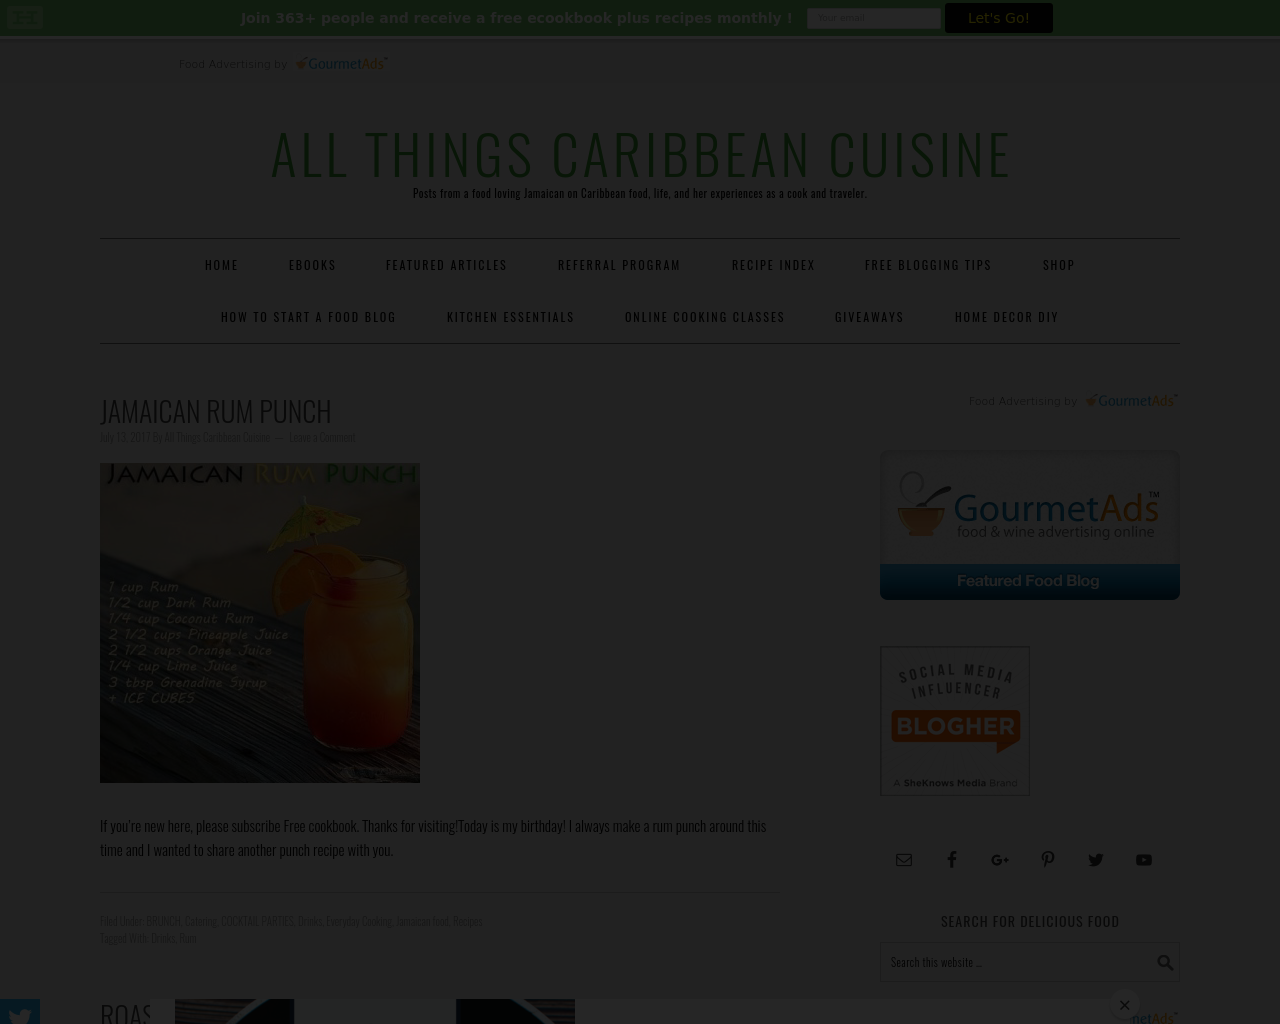 All-Things-Caribbean-Cuisine-Advertising-Reviews-Pricing